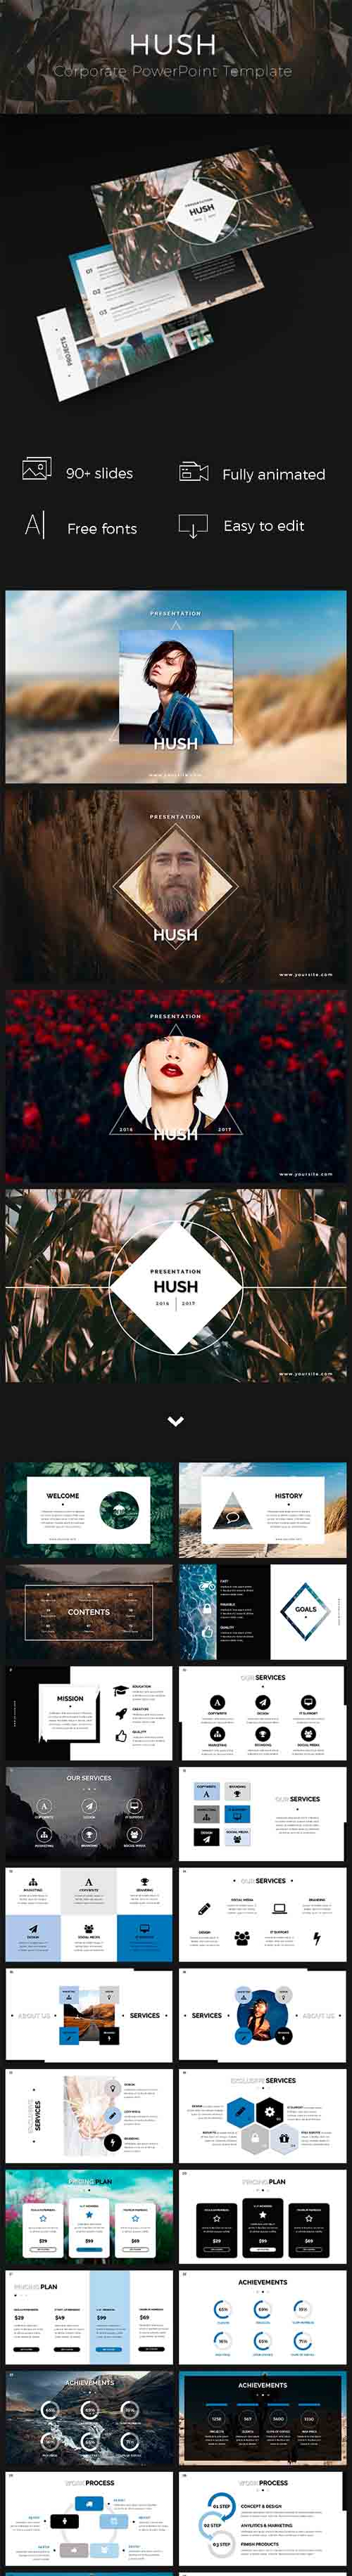 Hush PowerPoint Template 19244414